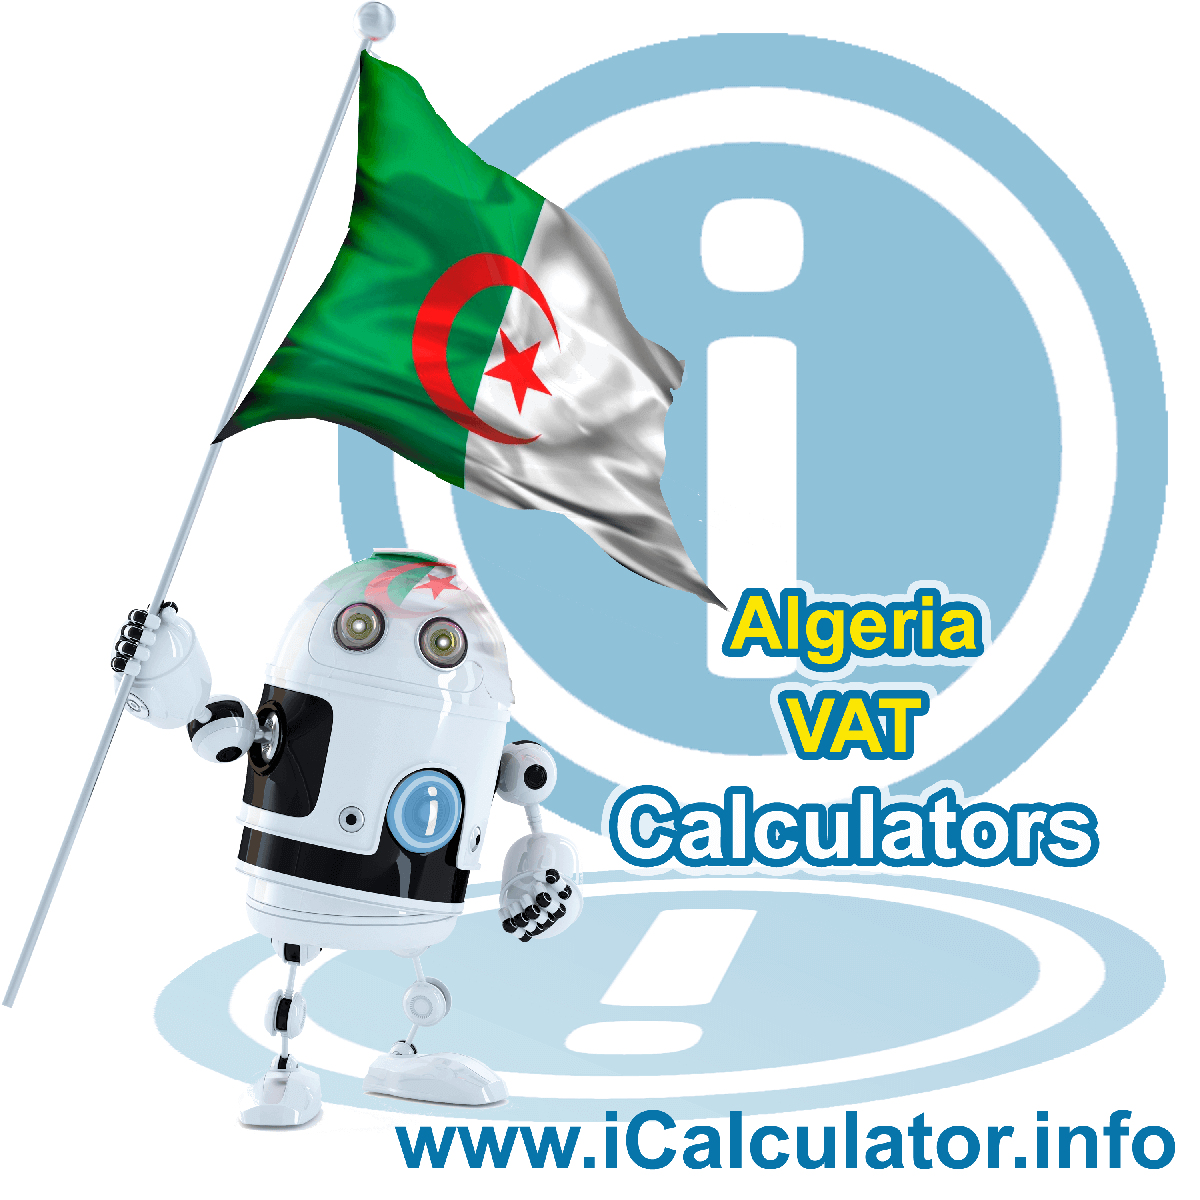 Algeria VAT Calculator. This image shows the Algeria flag and information relating to the VAT formula used for calculating Value Added Tax in Algeria using the Algeria VAT Calculator in 2019